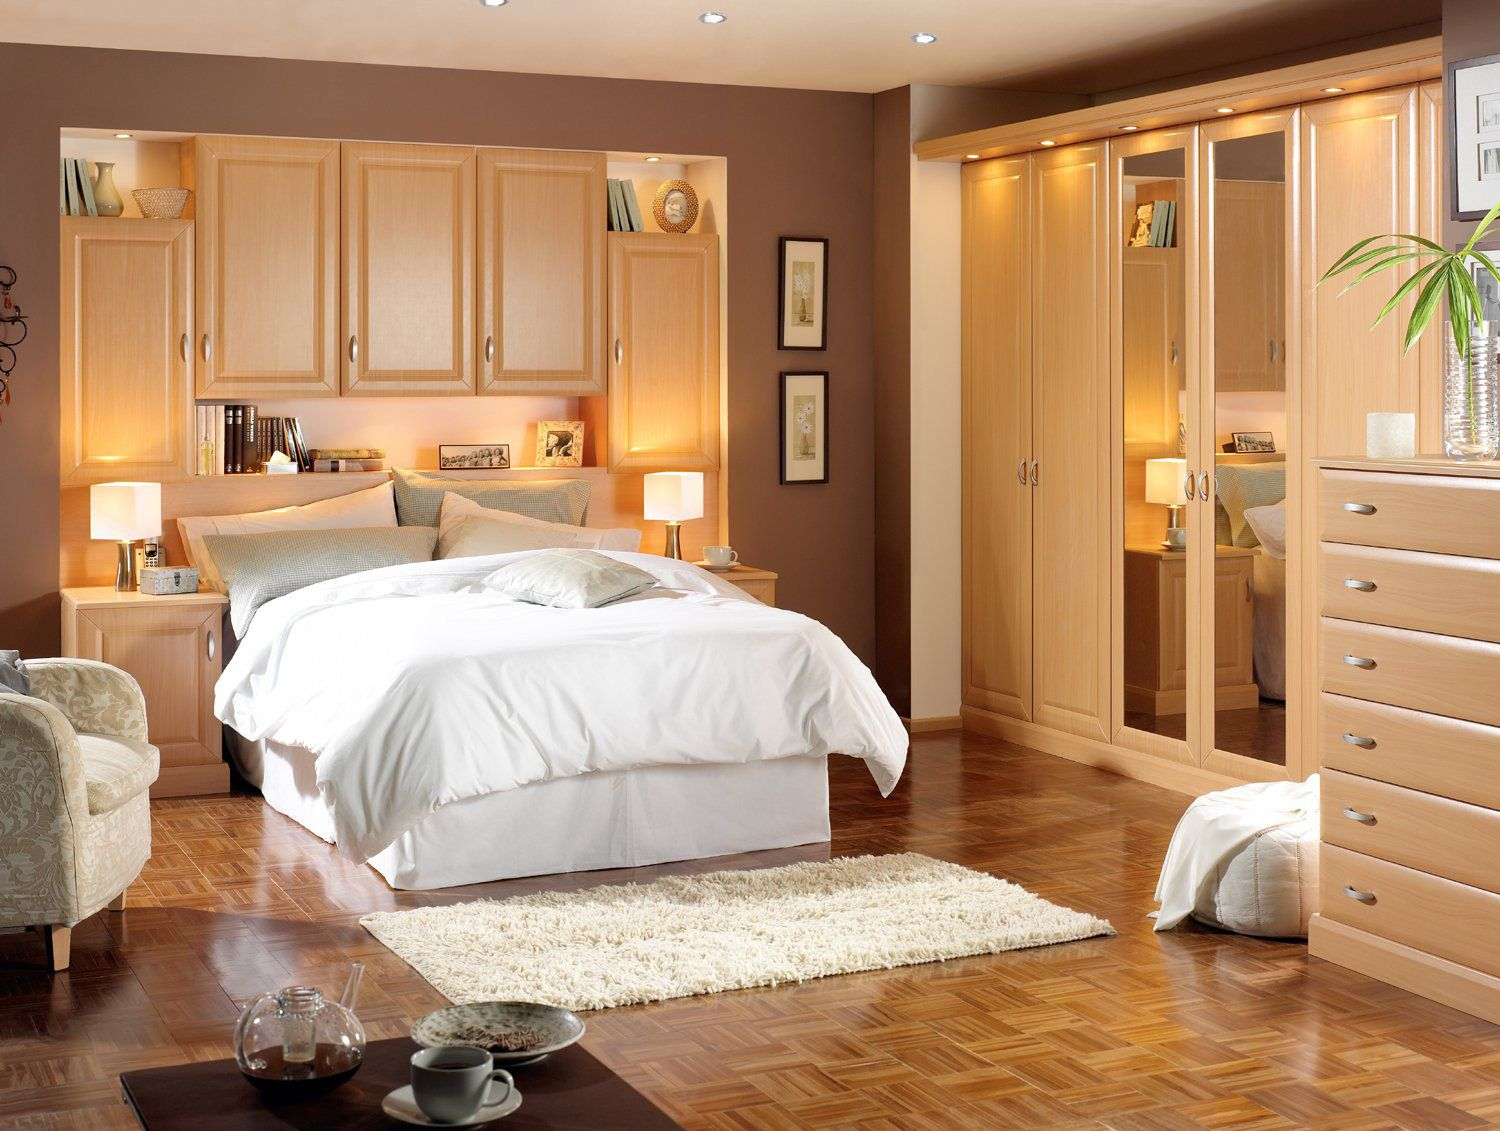 Room decoration how to decorate a feng shui bedroom with the color